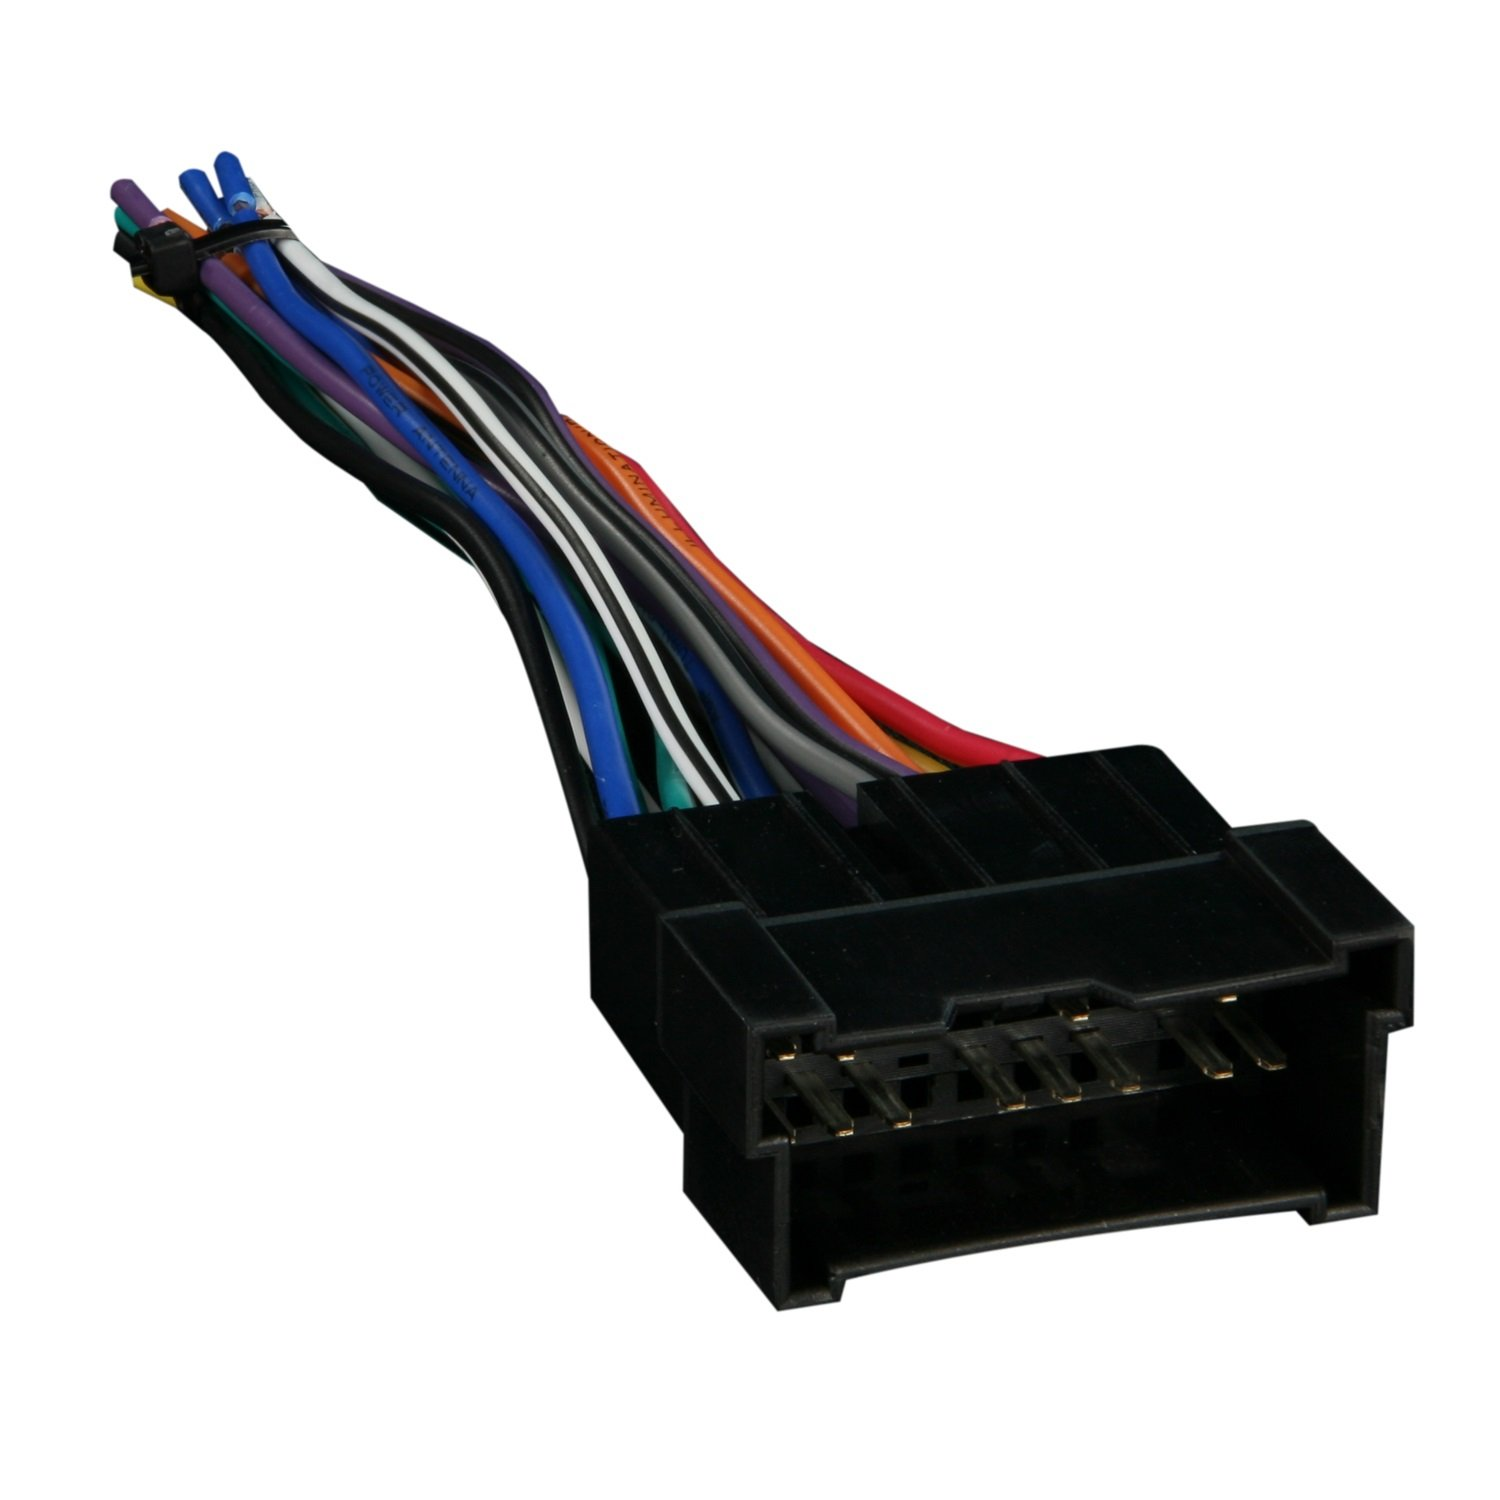 617yeBmOquL._SL1500_ amazon com metra 70 7301 radio wiring harness for hyundai kia 99 Power Acoustik PD- 710 at bayanpartner.co